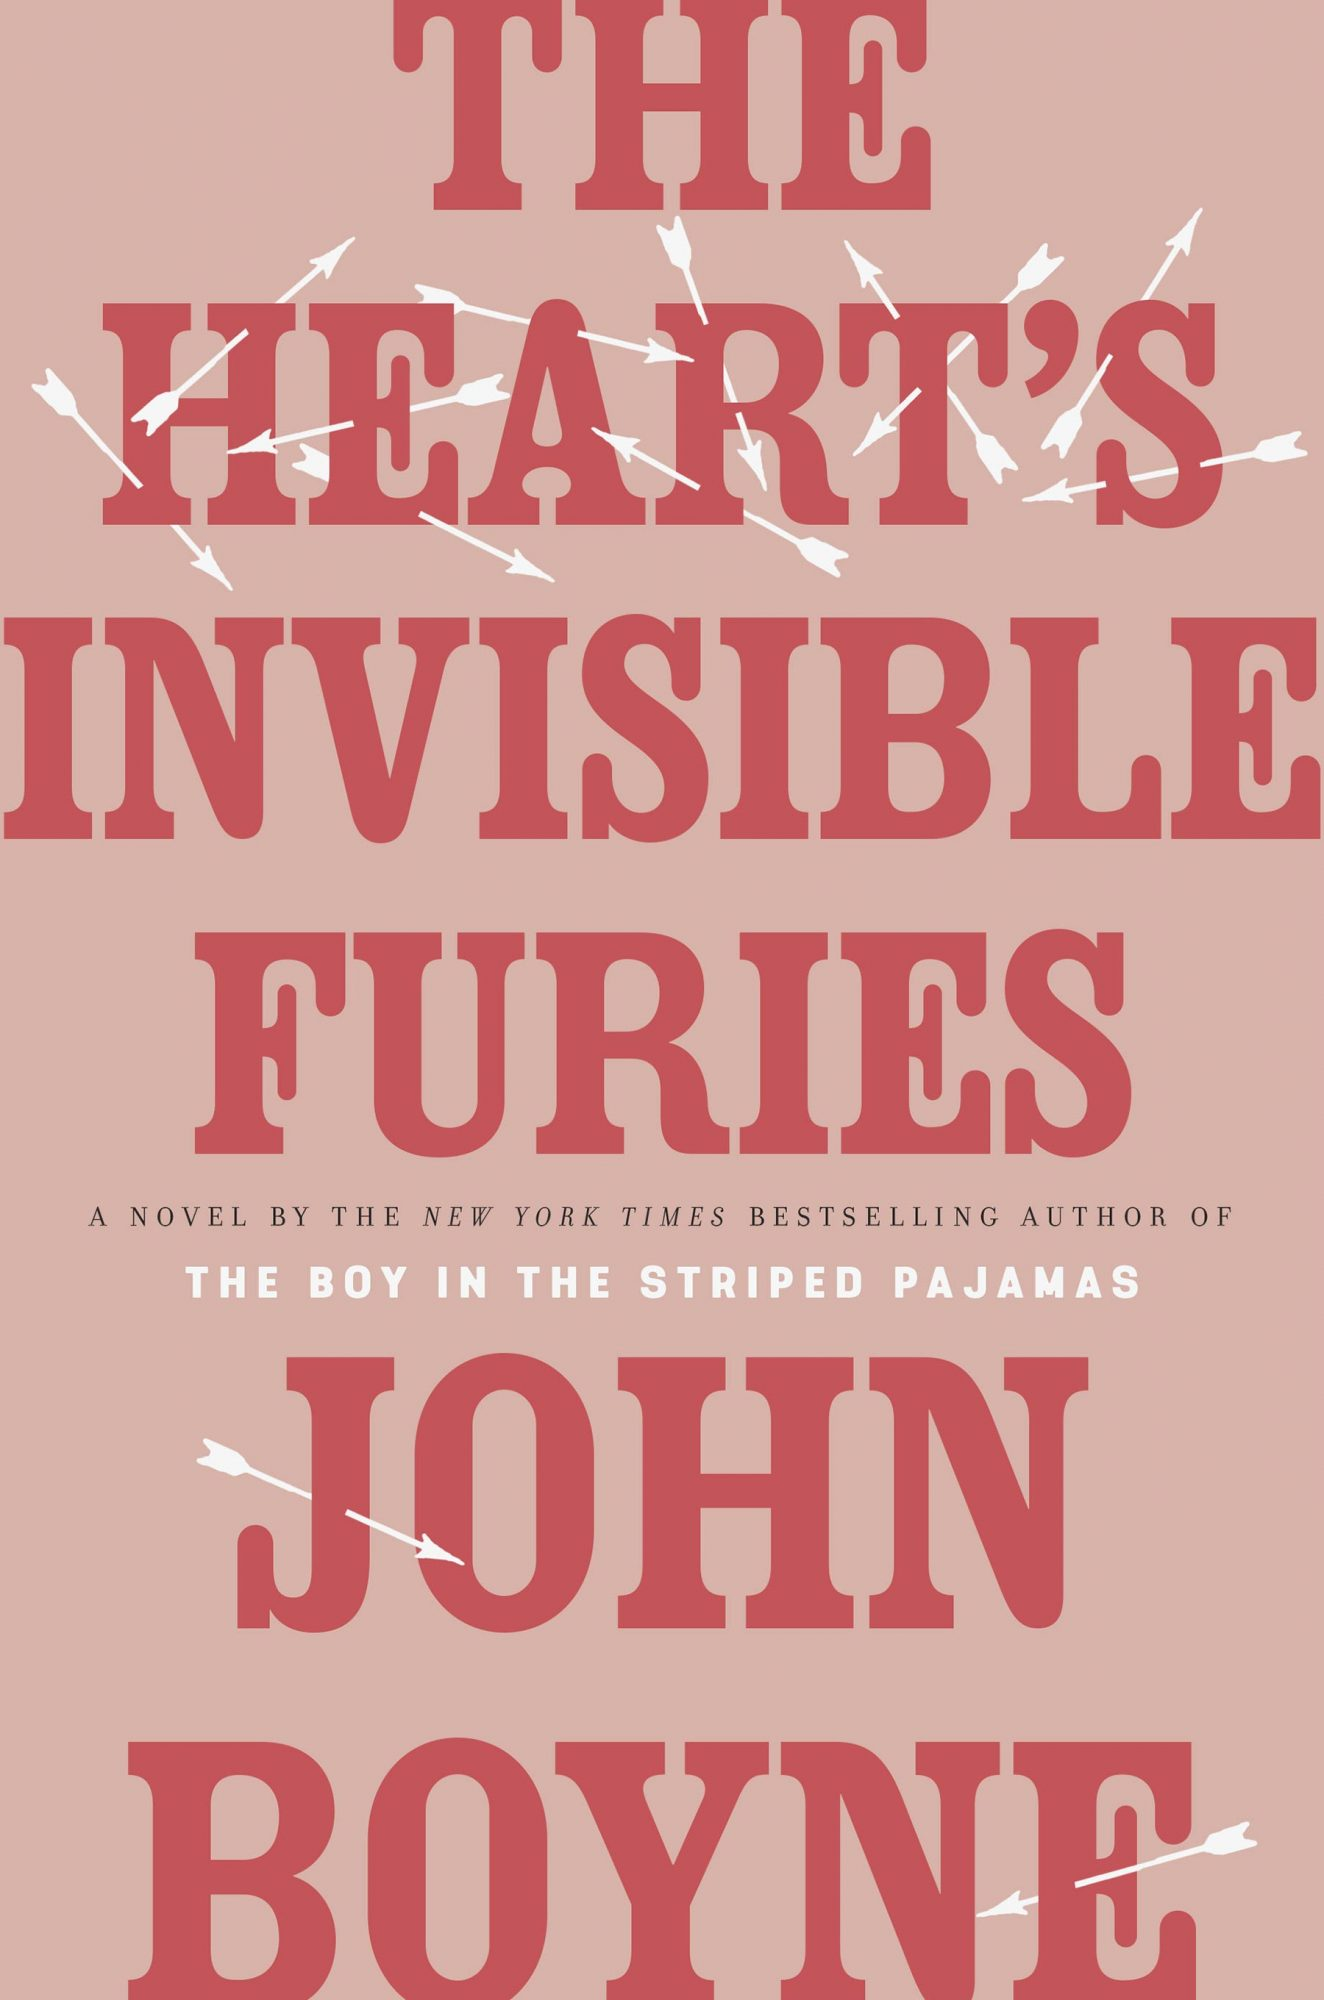 The Heart's Invisible Furiesby John Boyne